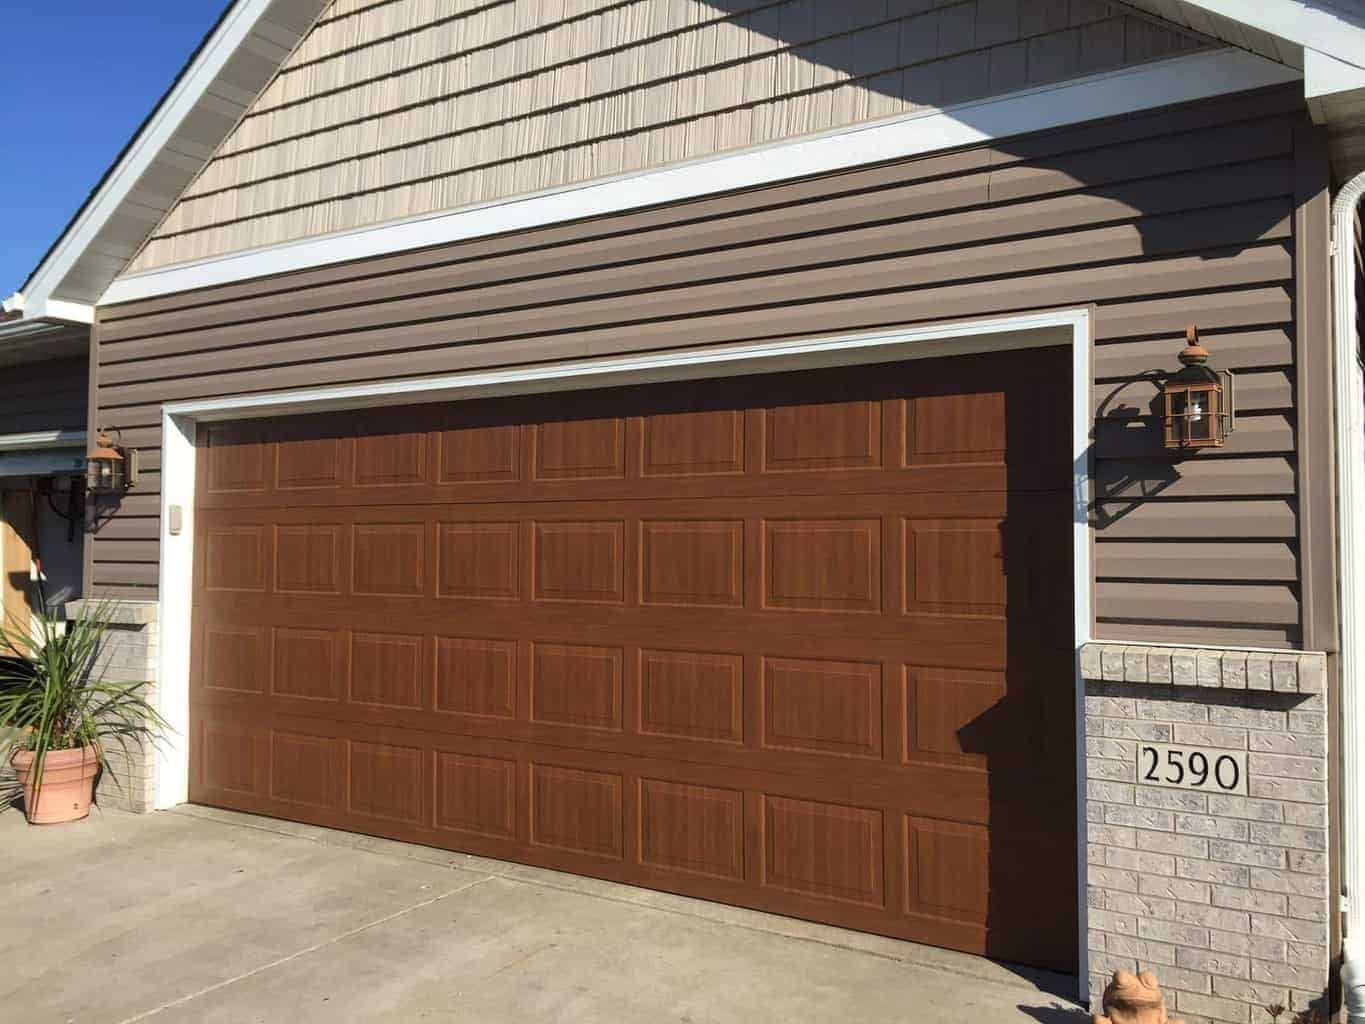 Overhead Doors for Business Garage Doors for Home  Overhead Door